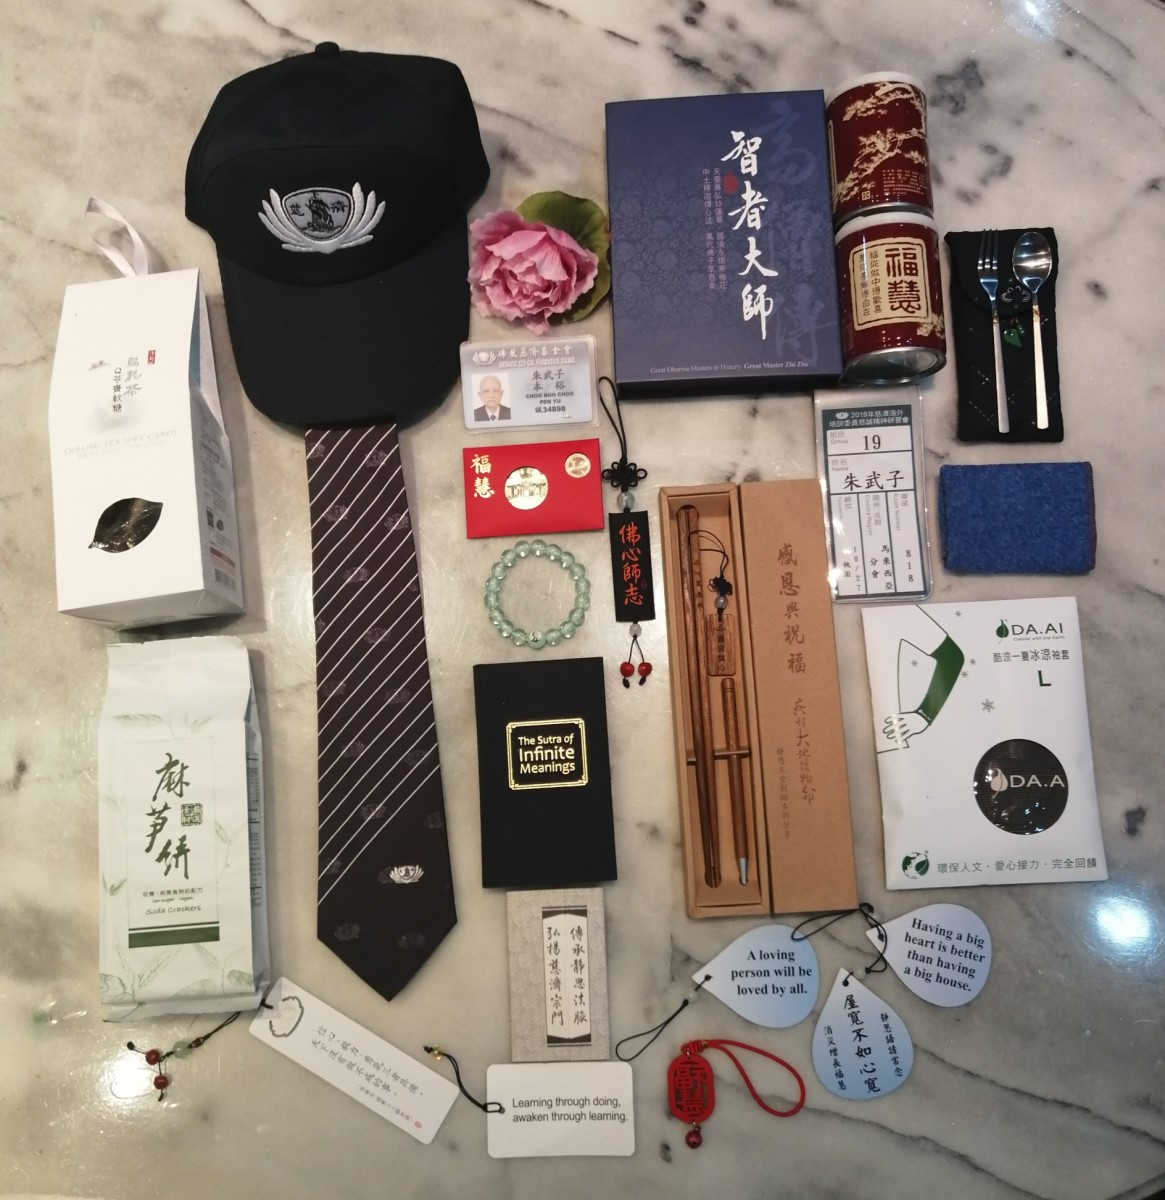 A paraphernalia of gifts from the Master and Tzu Chi Foundation.